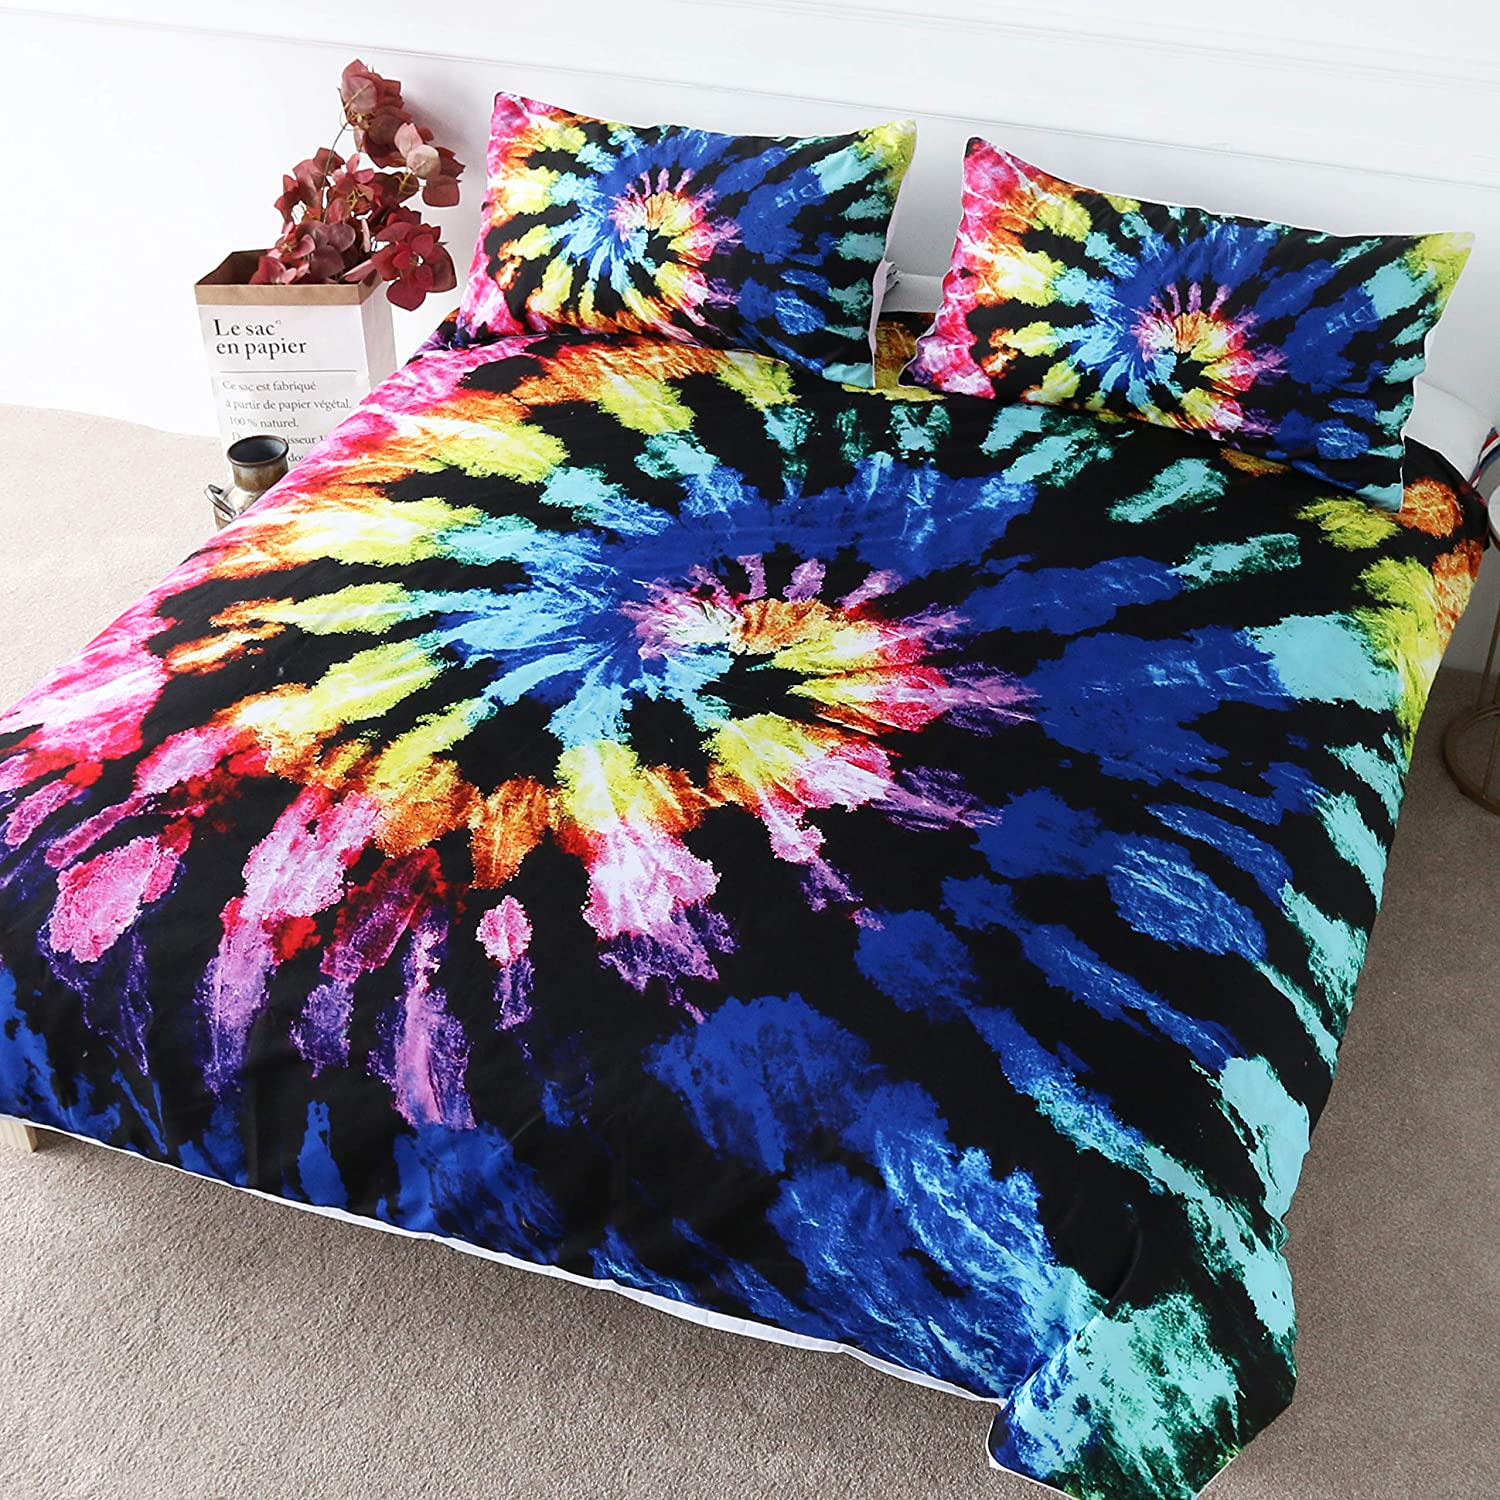 BlessLiving Blueberry Tie Dye Bedding Bohemian Hippie Tie Dyed Bed Spread 3 Pieces Boys Abstract Bed Duvet Covers (Twin)